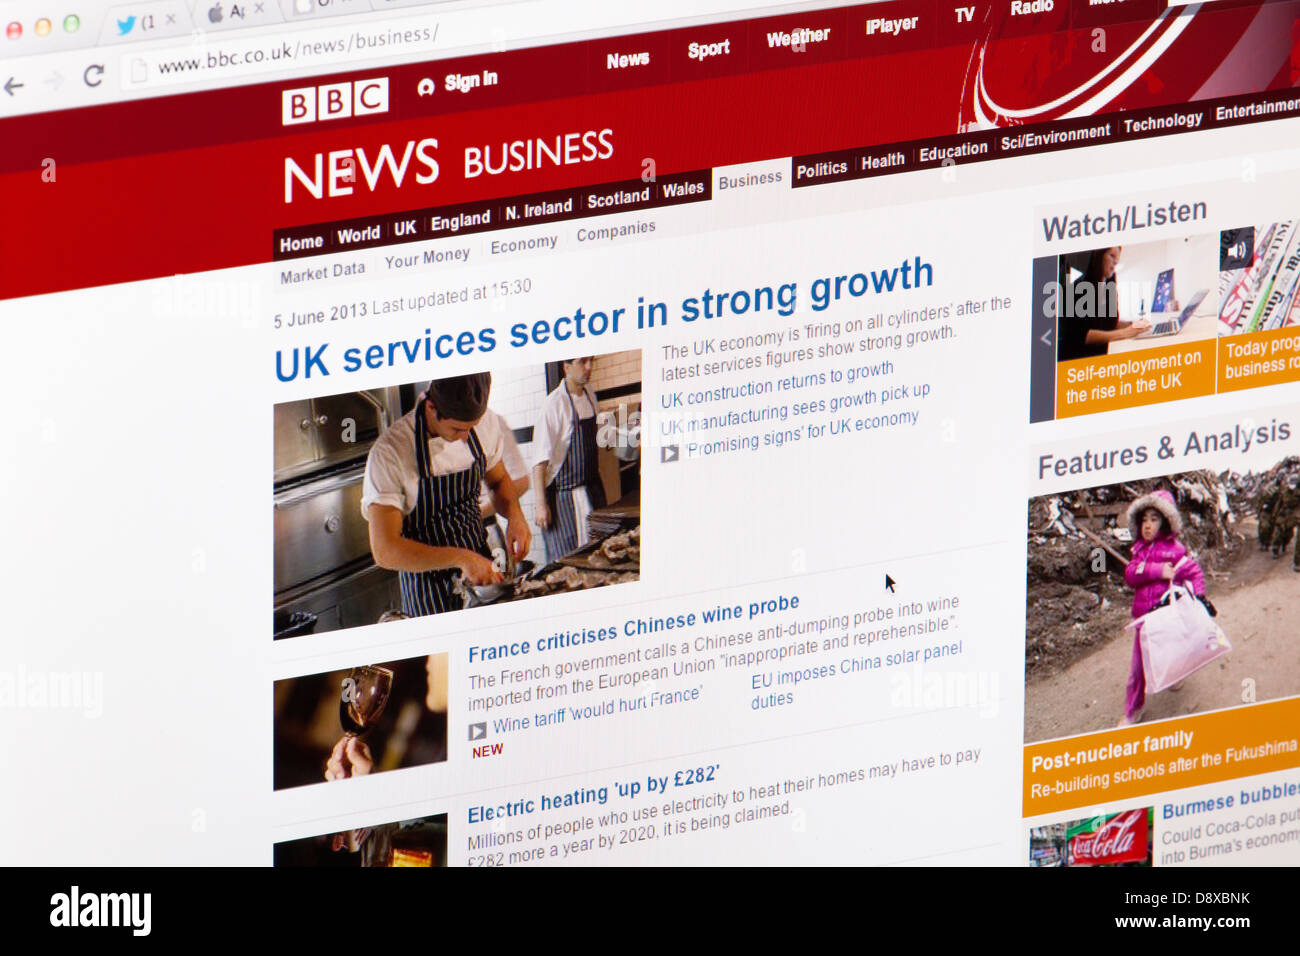 BBC News Business Pages Website or web page on a laptop screen or computer monitor - Stock Image